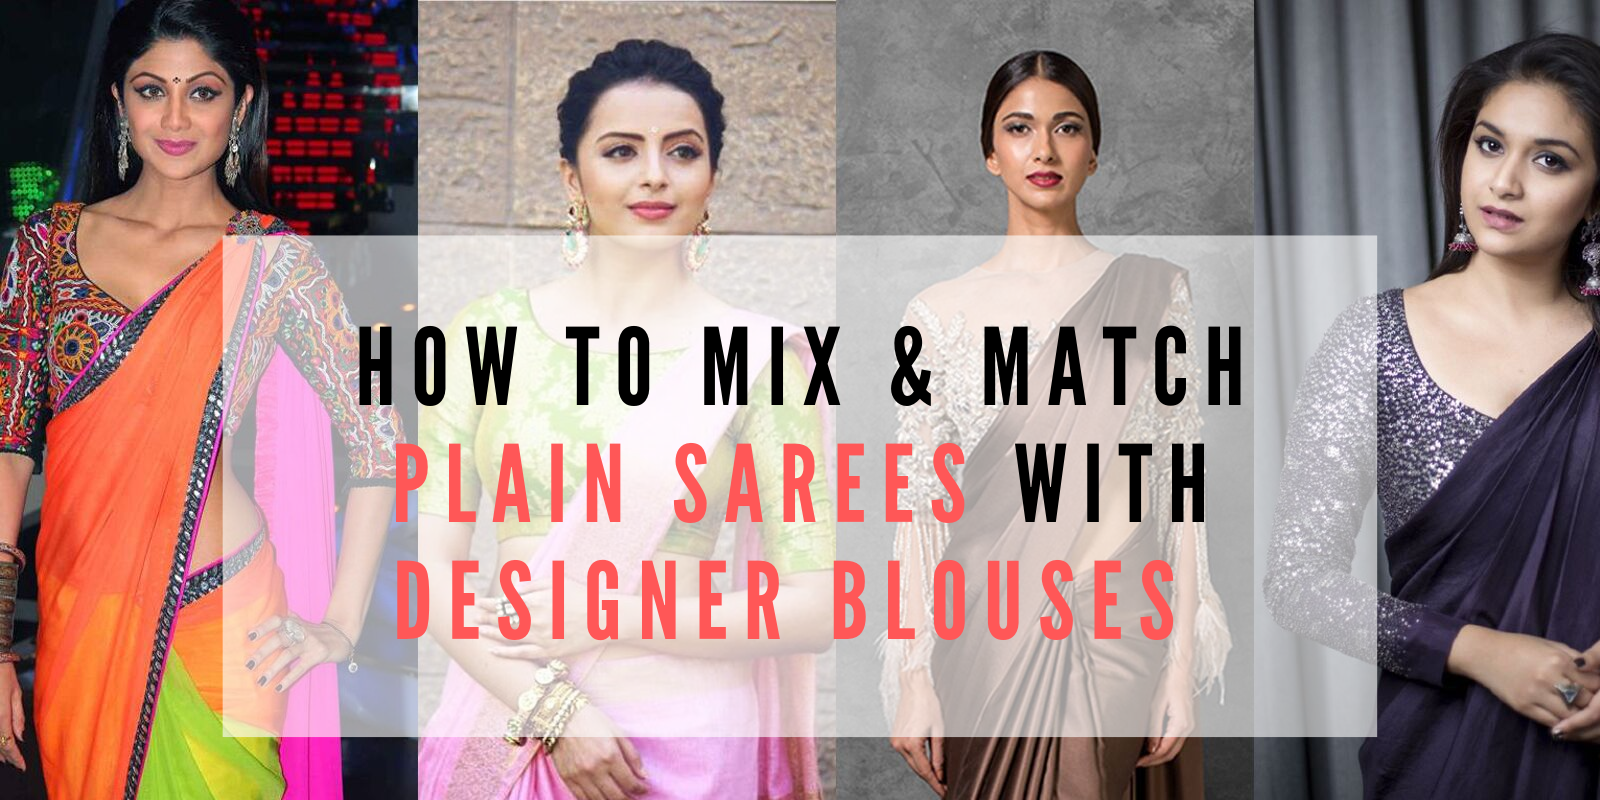 How to Mix & Match Plain Sarees with Designer Blouses